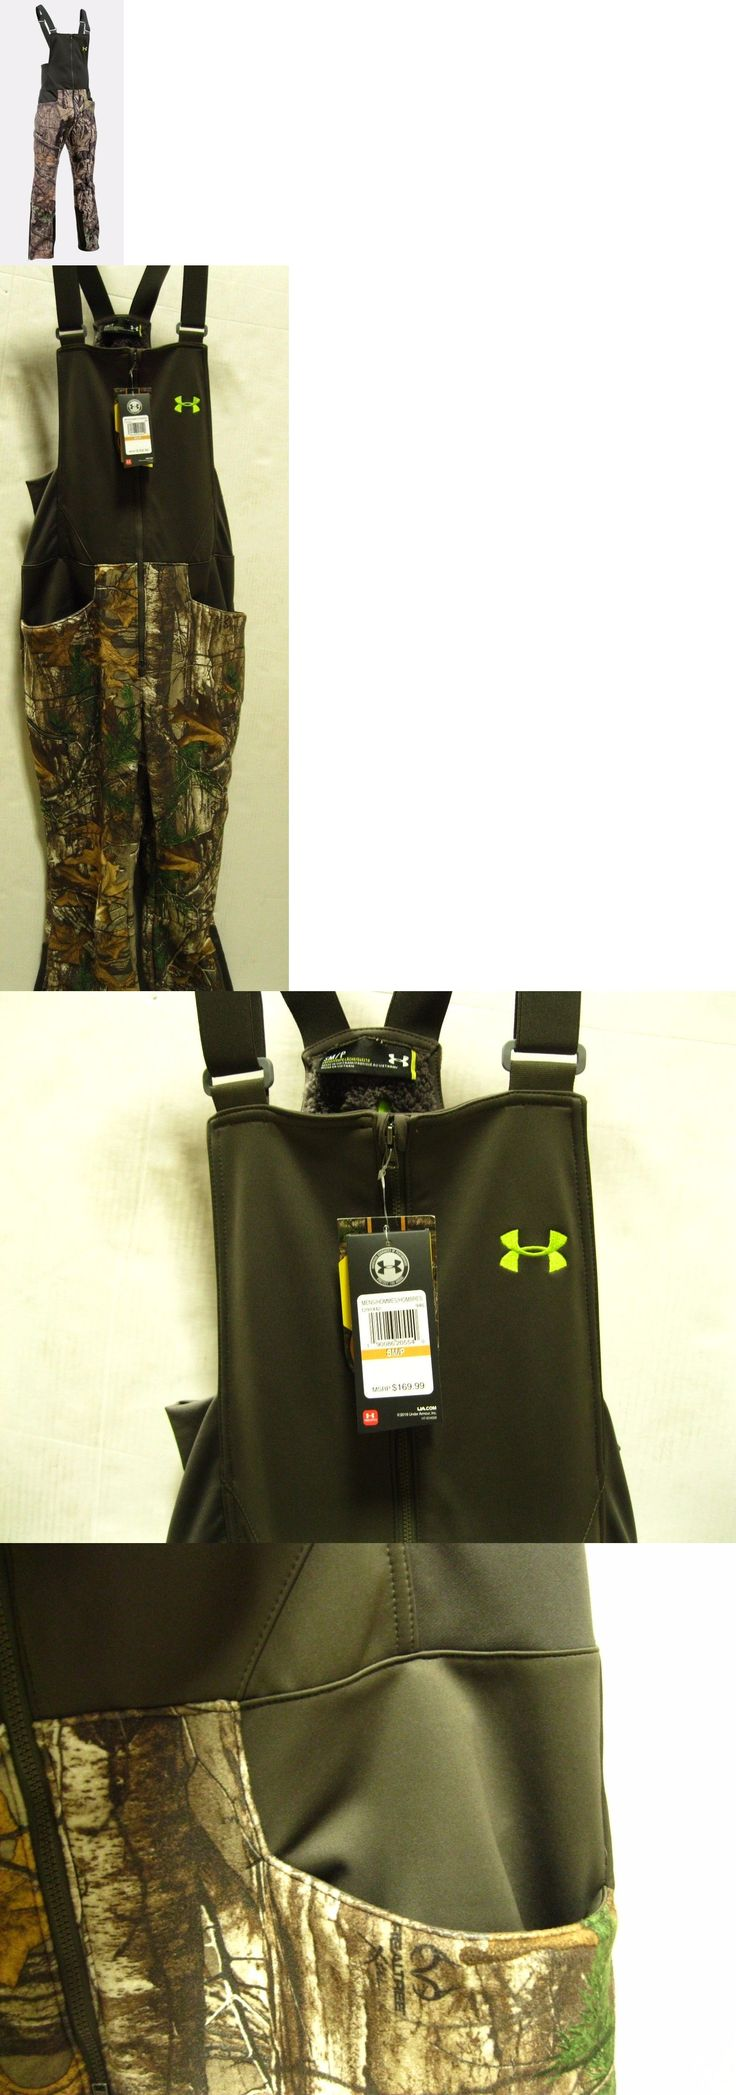 Pants and Bibs 177873: Under Armour Mens Ua Stealth Fleece Hunting Bibs - Rtap - Sm- #1291442-Nwt -> BUY IT NOW ONLY: $84.99 on eBay!